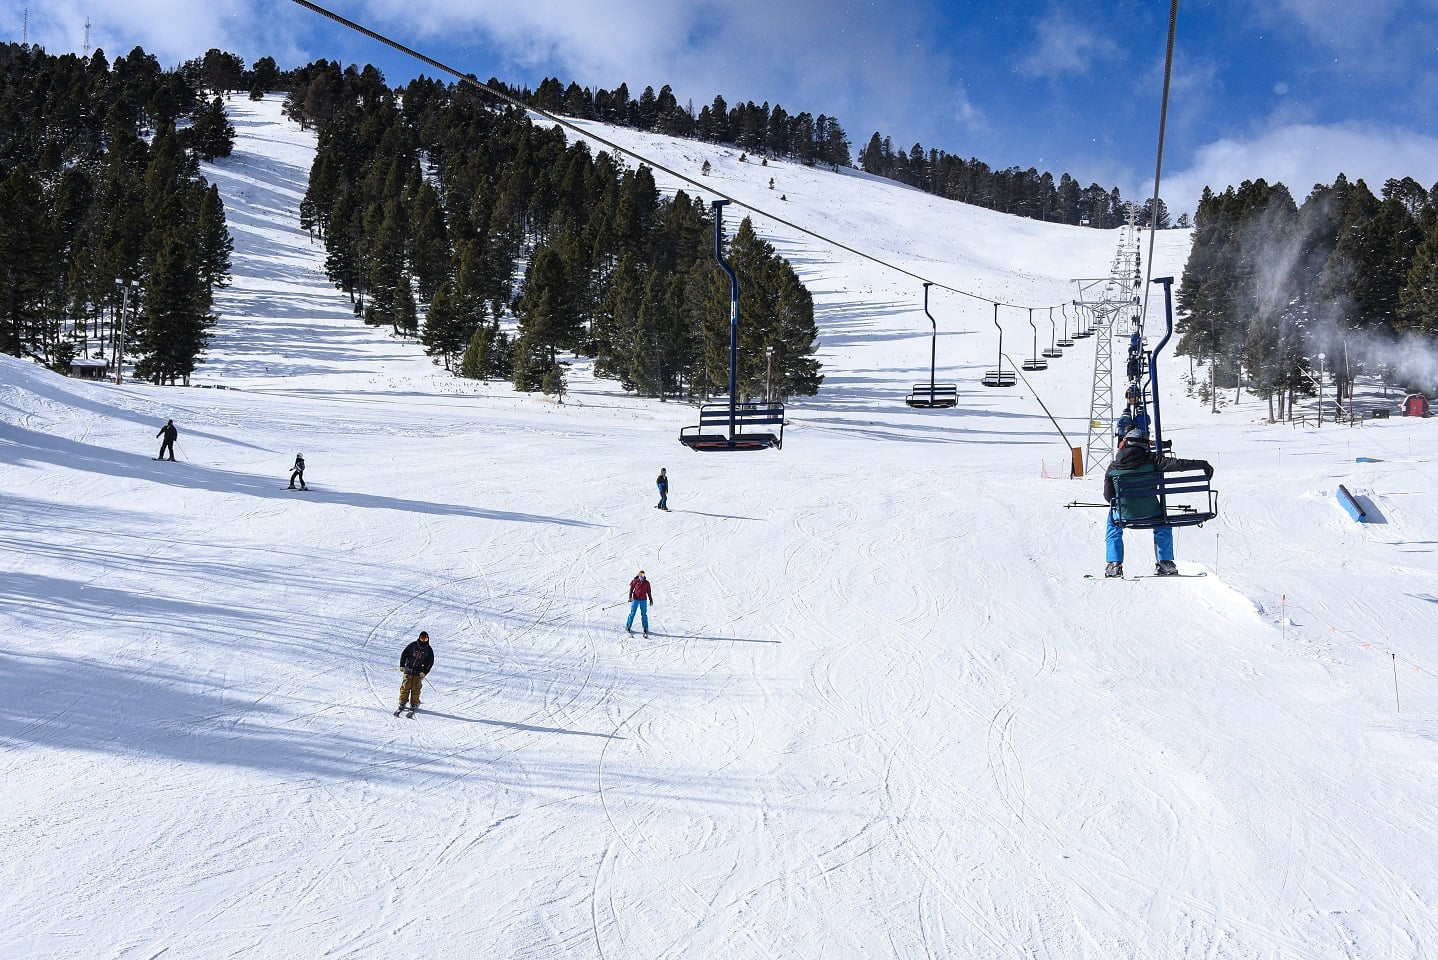 Image of a few skiers hitting the slopes at Great Divide Ski Area in Montana